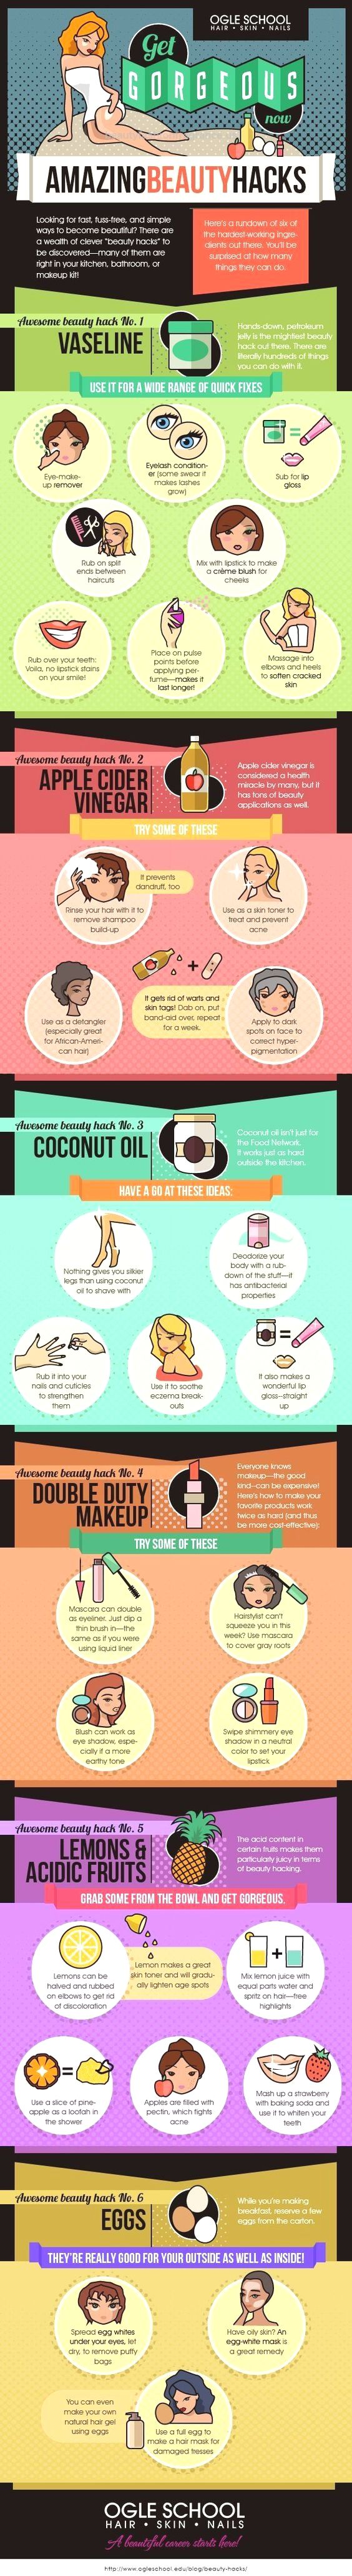 10 Amazing DIY Beauty Infographics to Use Before the Wedding – MODwedding  Unconventional Beauty Secrets. The Ogle School breaks down some of the most useful beauty hacks that you can access right in your home.:  http://www.beautyfashionfragrance.us/2017/05/25/10-amazing-diy-beauty-infographics-to-use-before-the-wedding-modwedding/